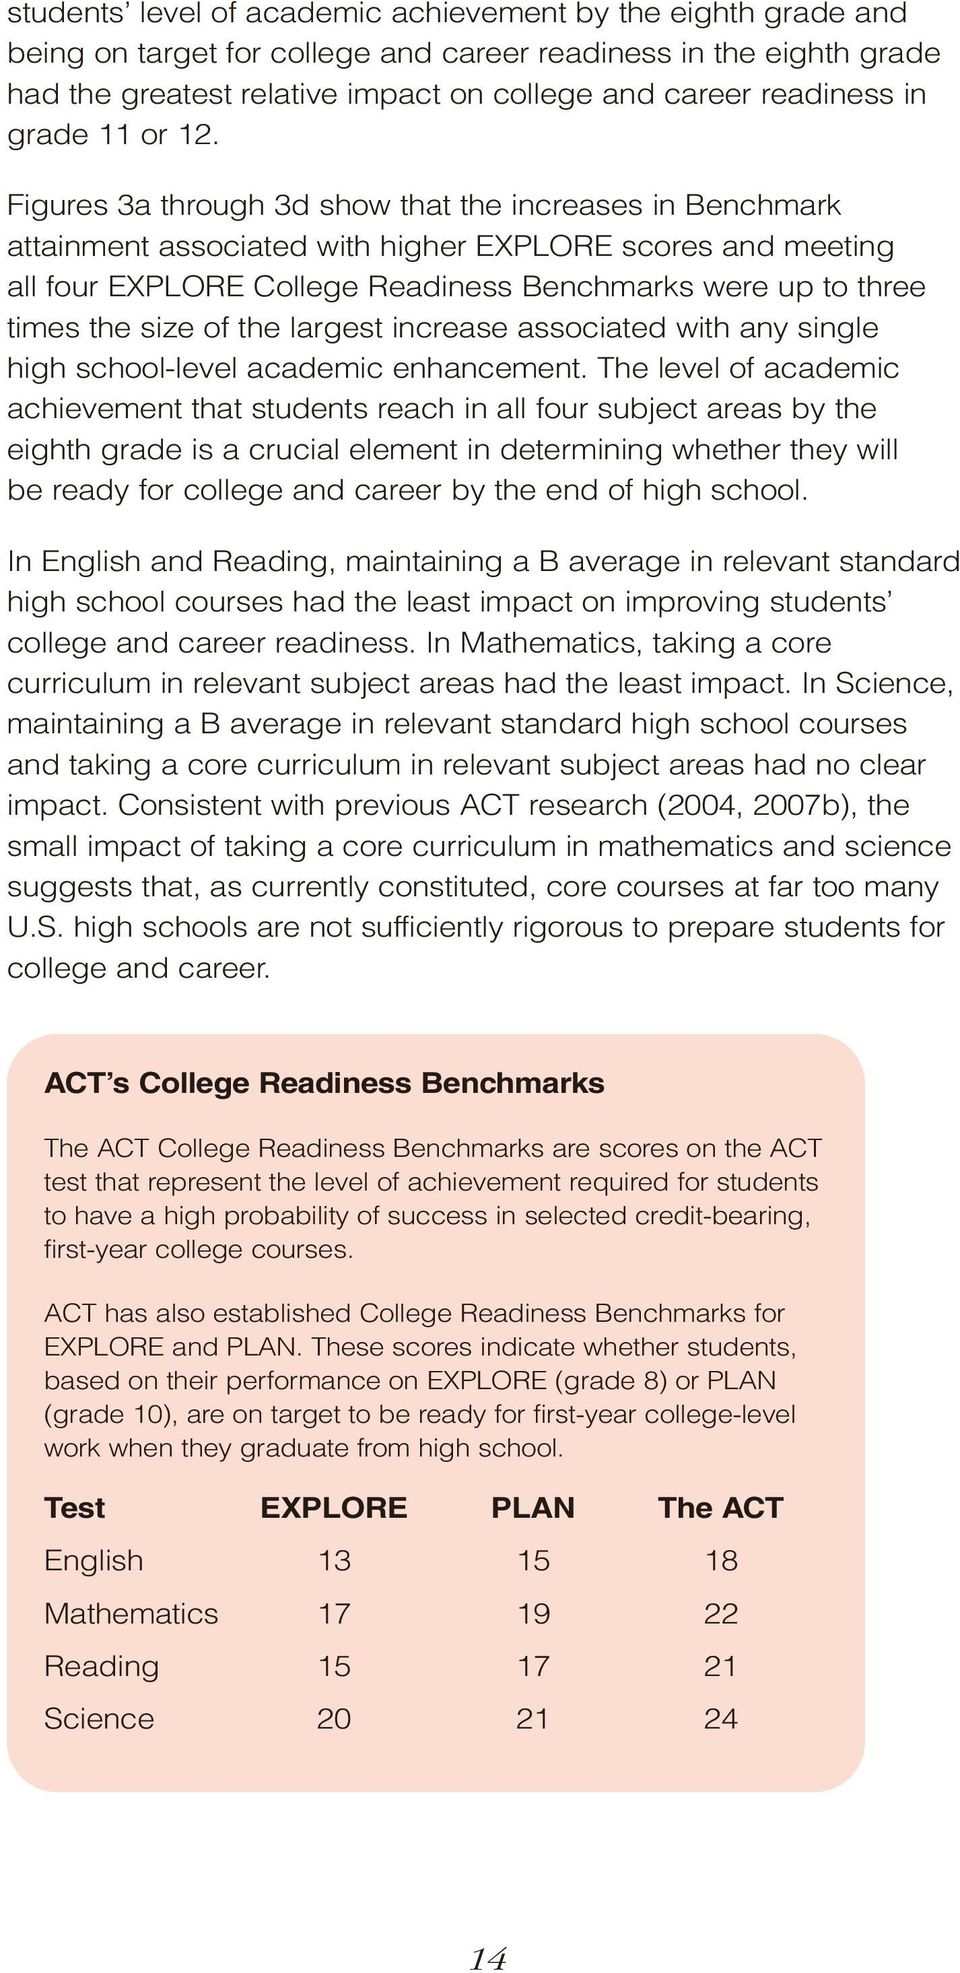 Figures 3a through 3d show that the increases in Benchmark attainment associated with higher EXPLORE scores and meeting all four EXPLORE College Readiness Benchmarks were up to three times the size